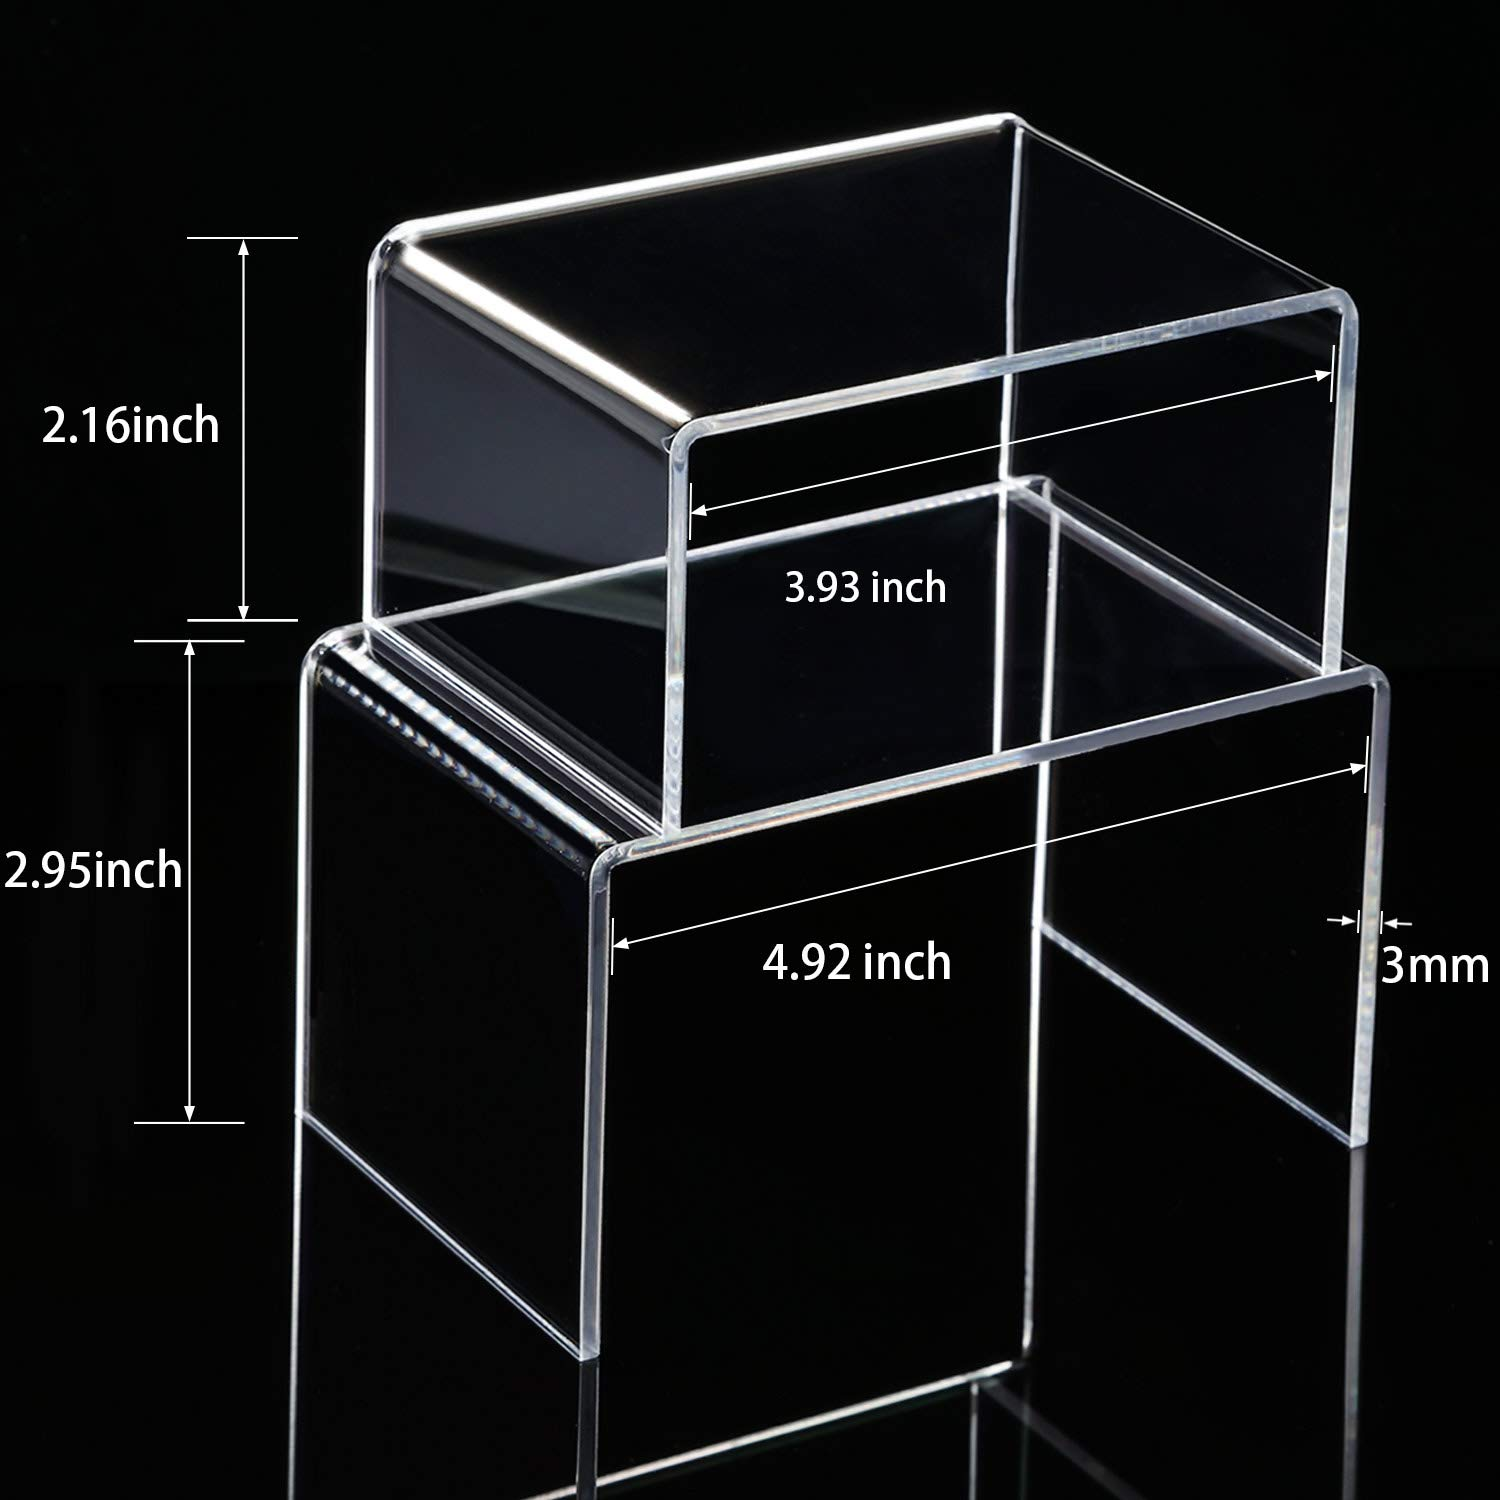 Chuangdi 4 Pieces Clear Acrylic Display Risers, Jewelry Display Risers Showcase Fixtures, Tear Off The Protective Film Before Use (4.1 Inch and 5 Inch) by Chuangdi (Image #2)